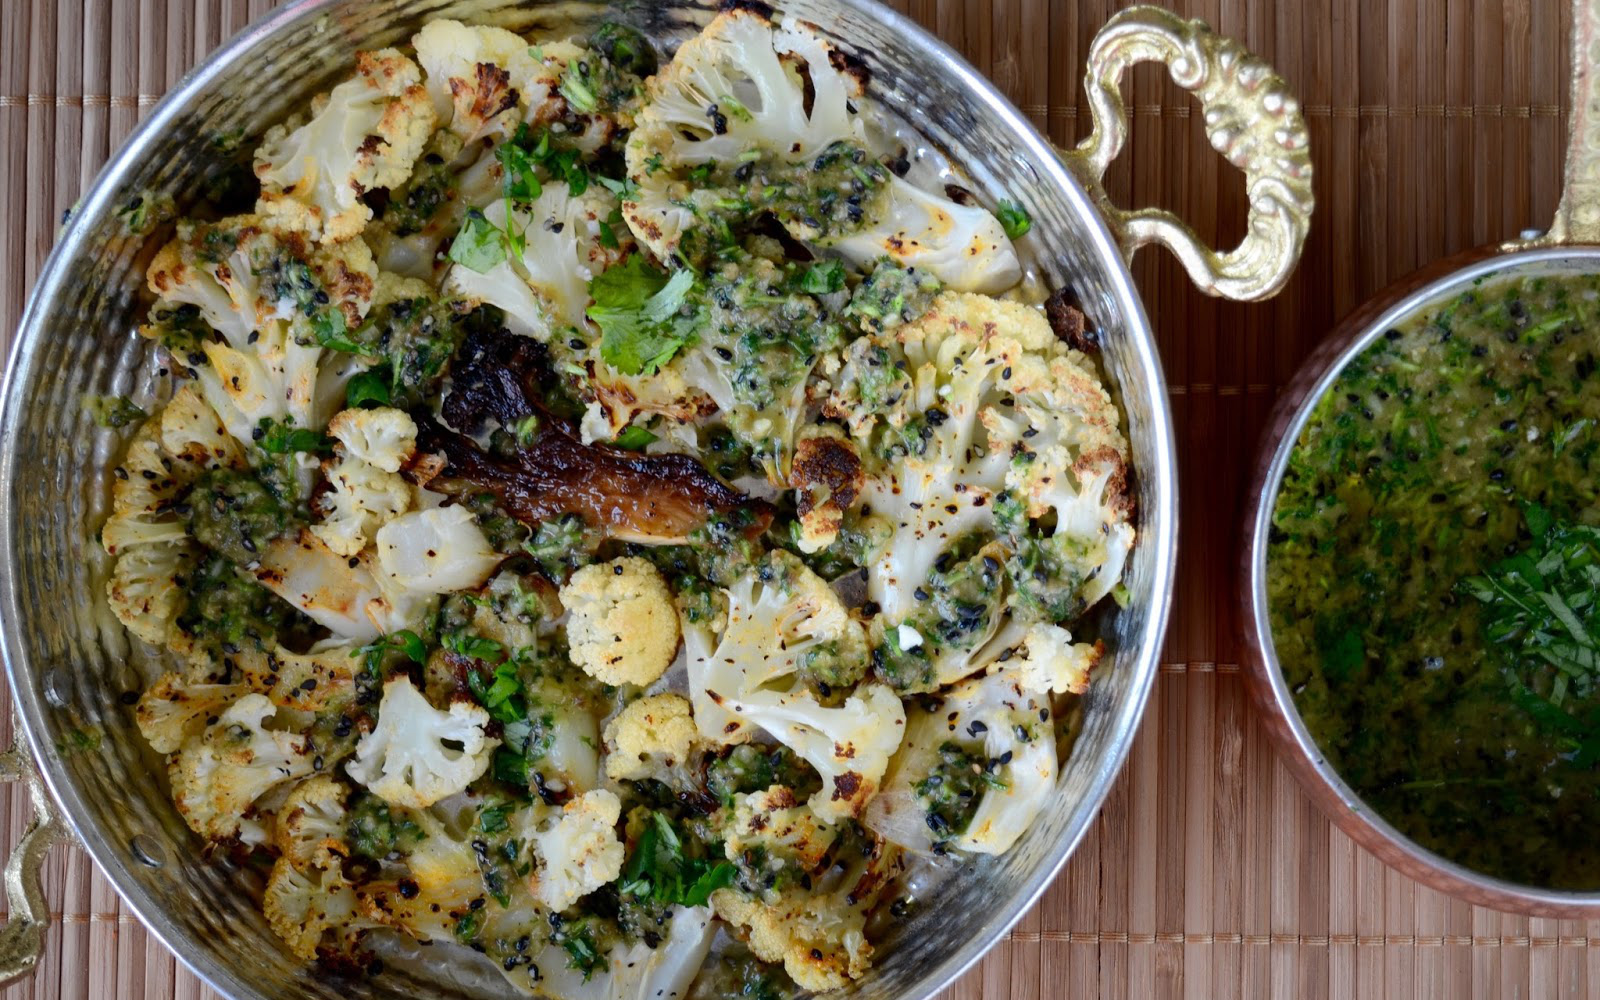 Blistered Cauliflower With Cilantro Sauce